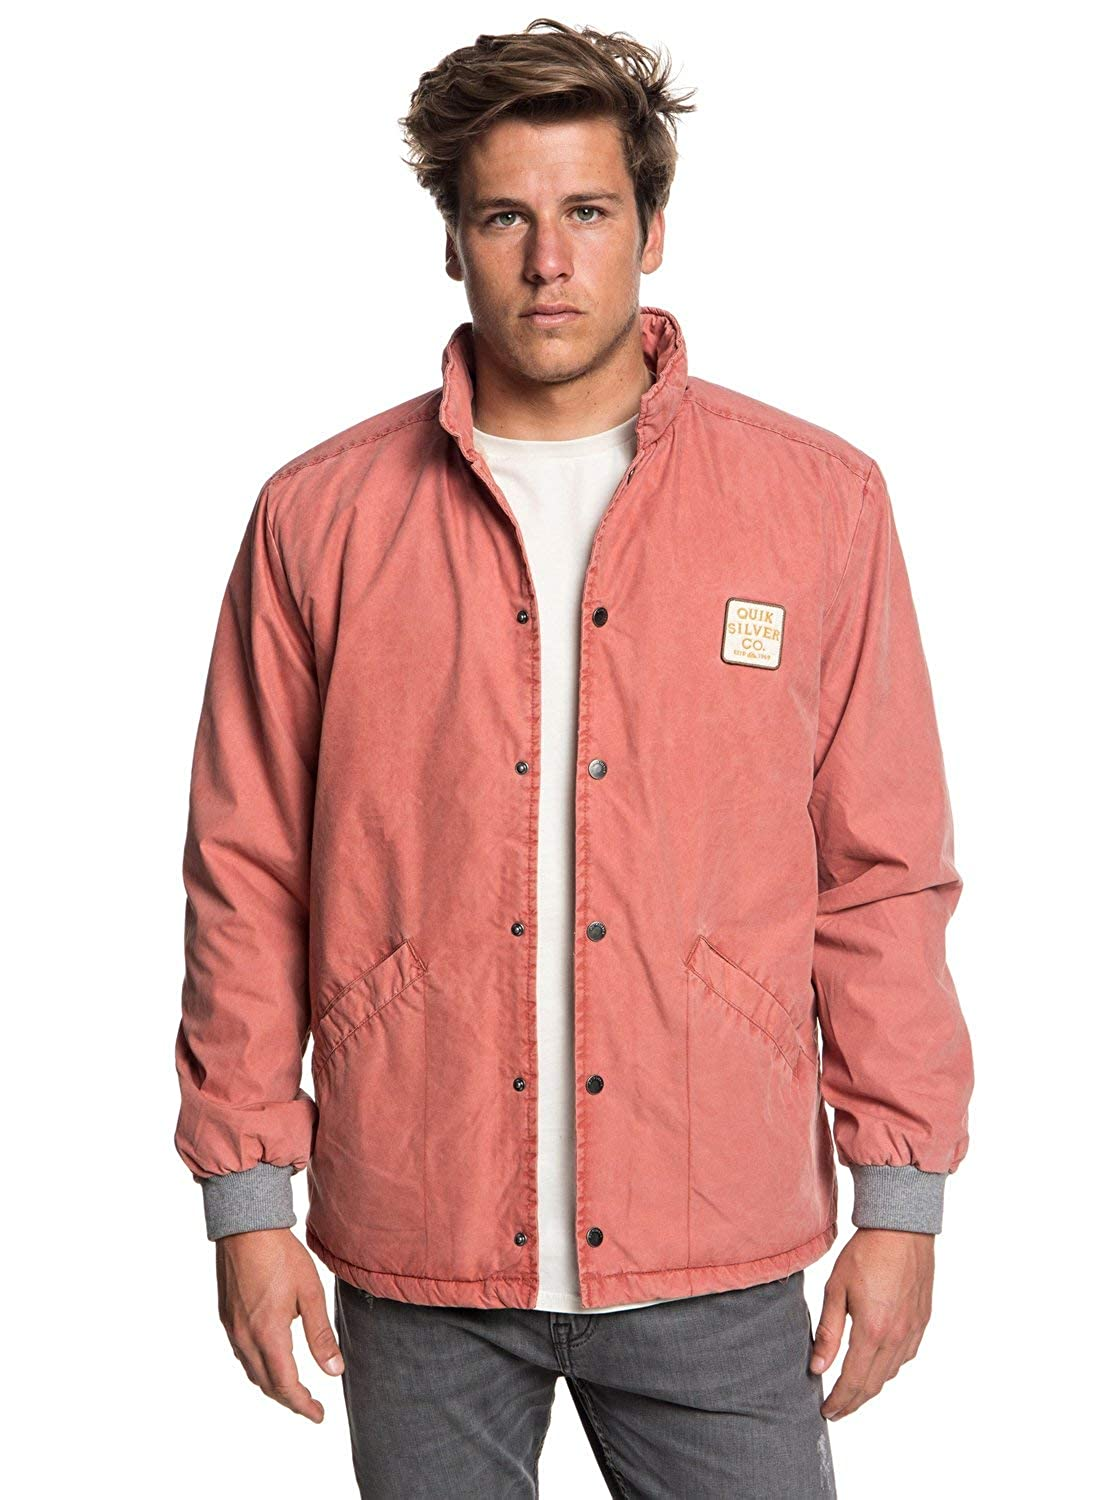 Amazon.com: Quiksilver Mens Kaimon Jacket: Clothing